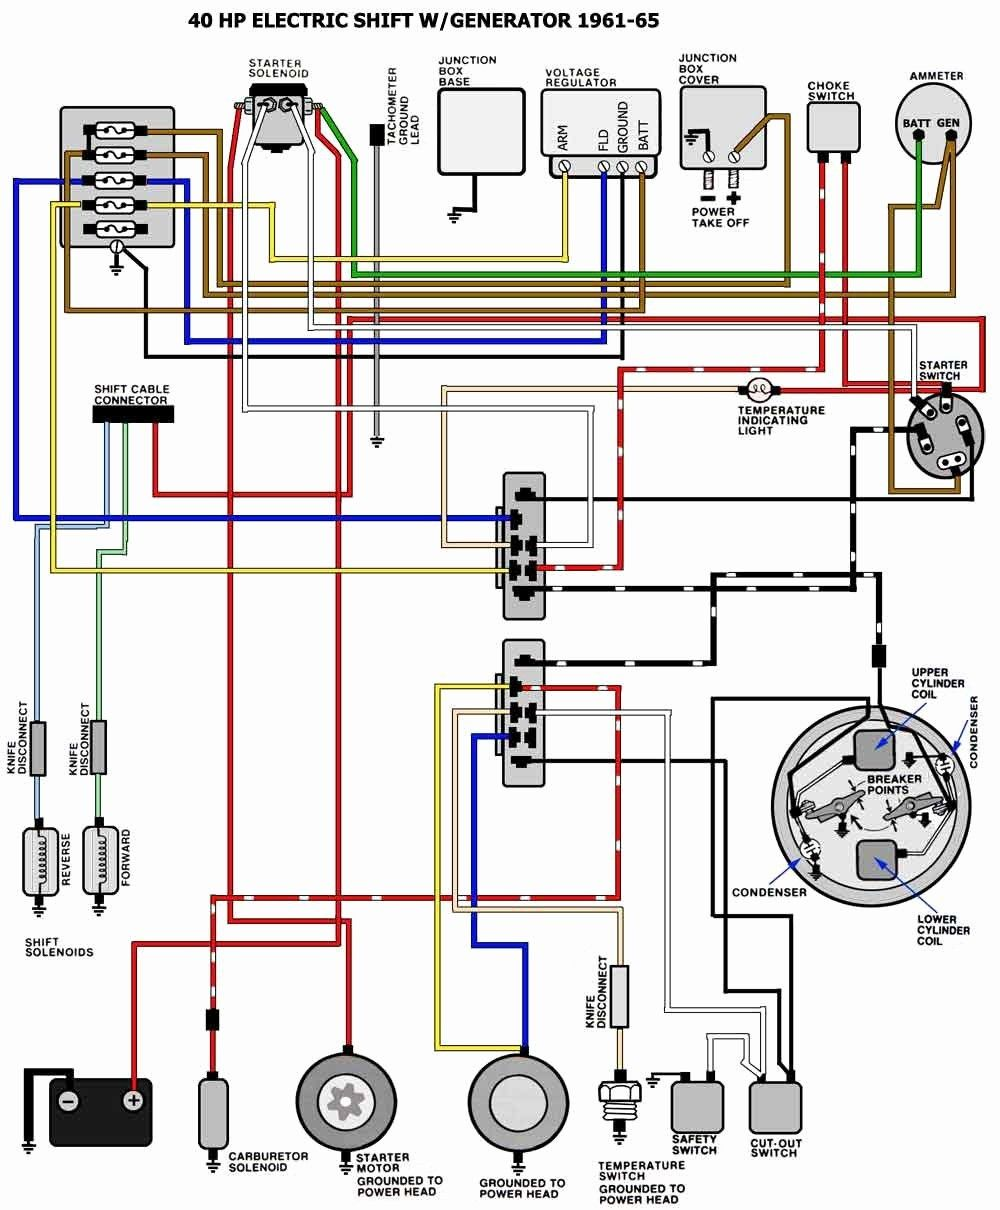 40 Hp Mercury Outboard Wiring Diagram New In 2020 Mercury Outboard Boat Wiring Diagram